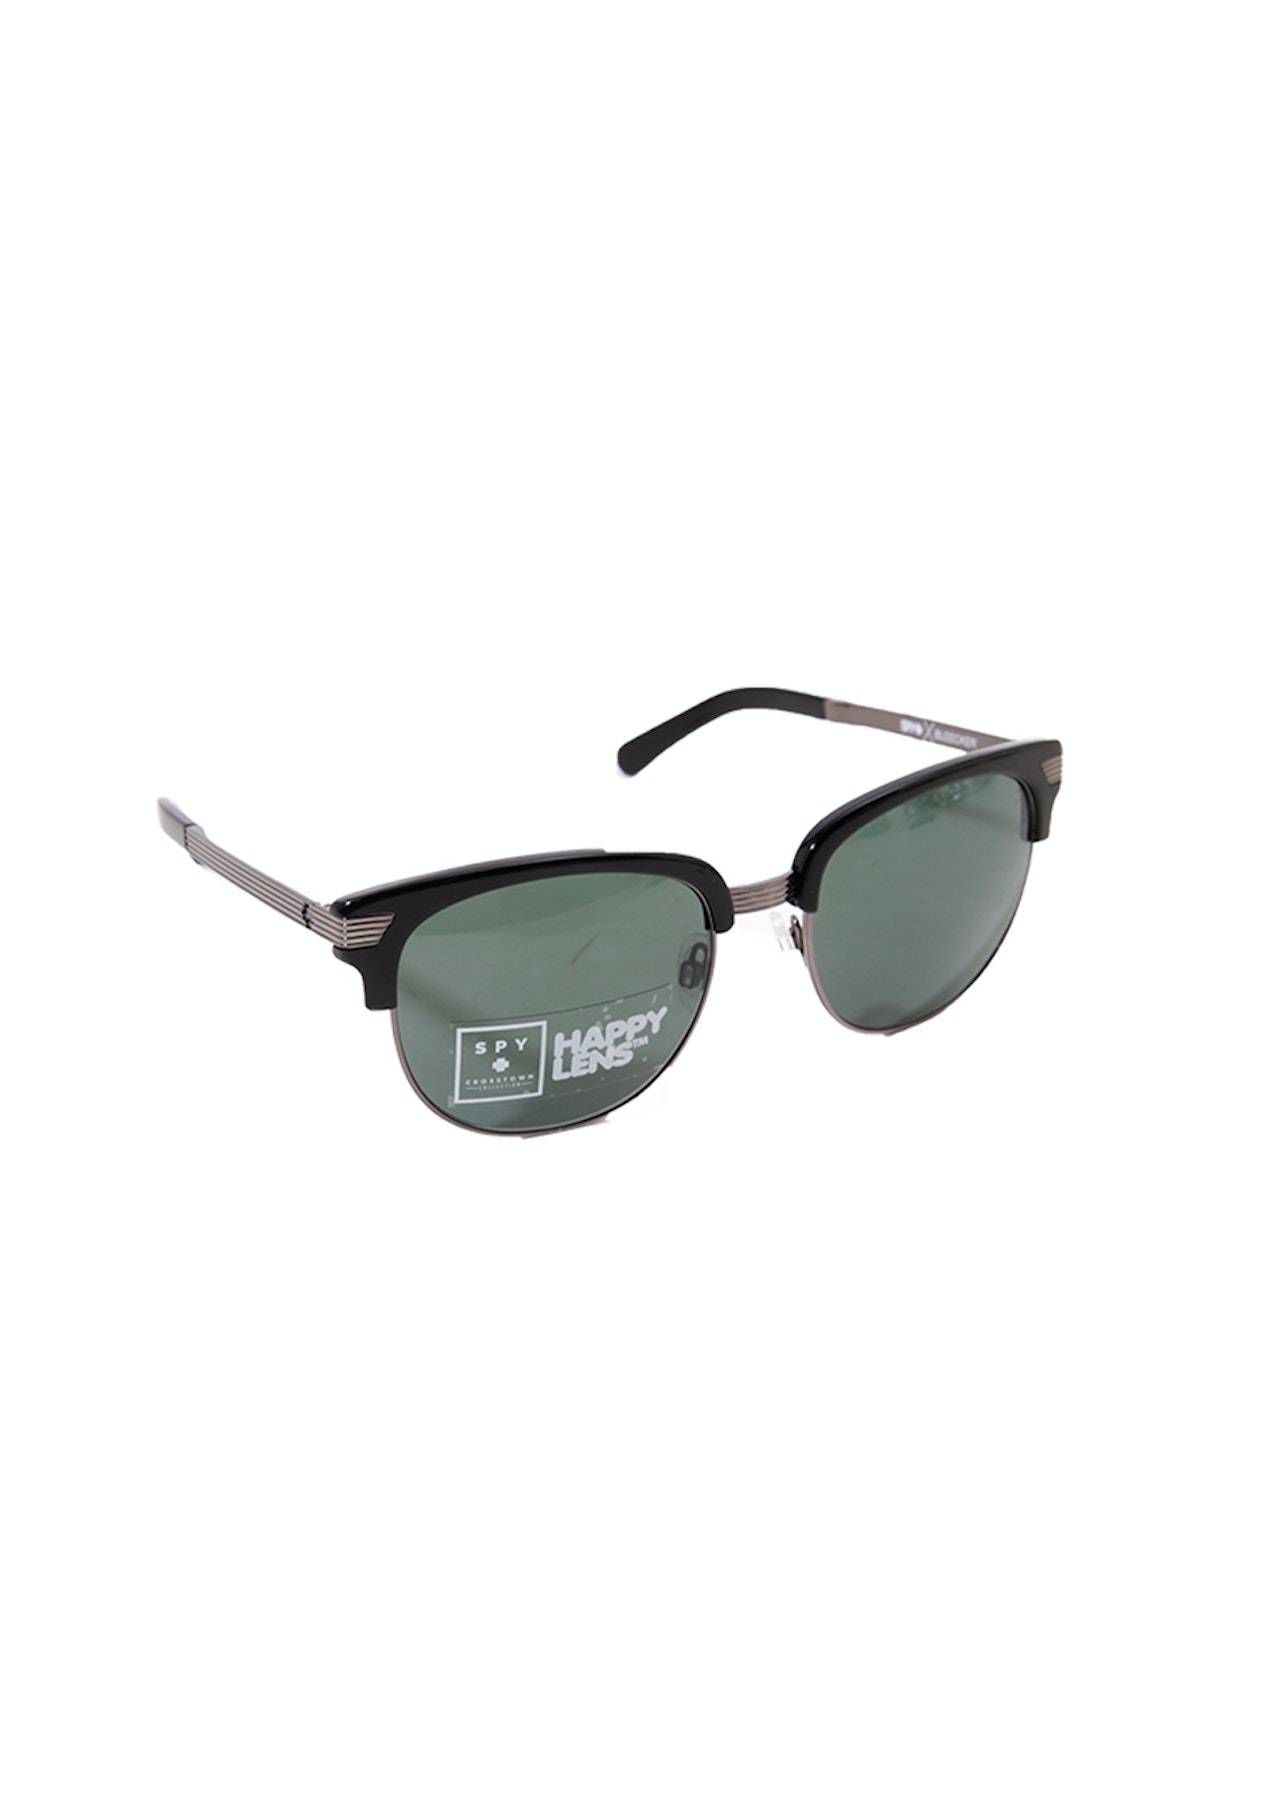 1fa91ec611aa3 SPY Bellows Sunglasses - Sunglasses Steals - Onceit